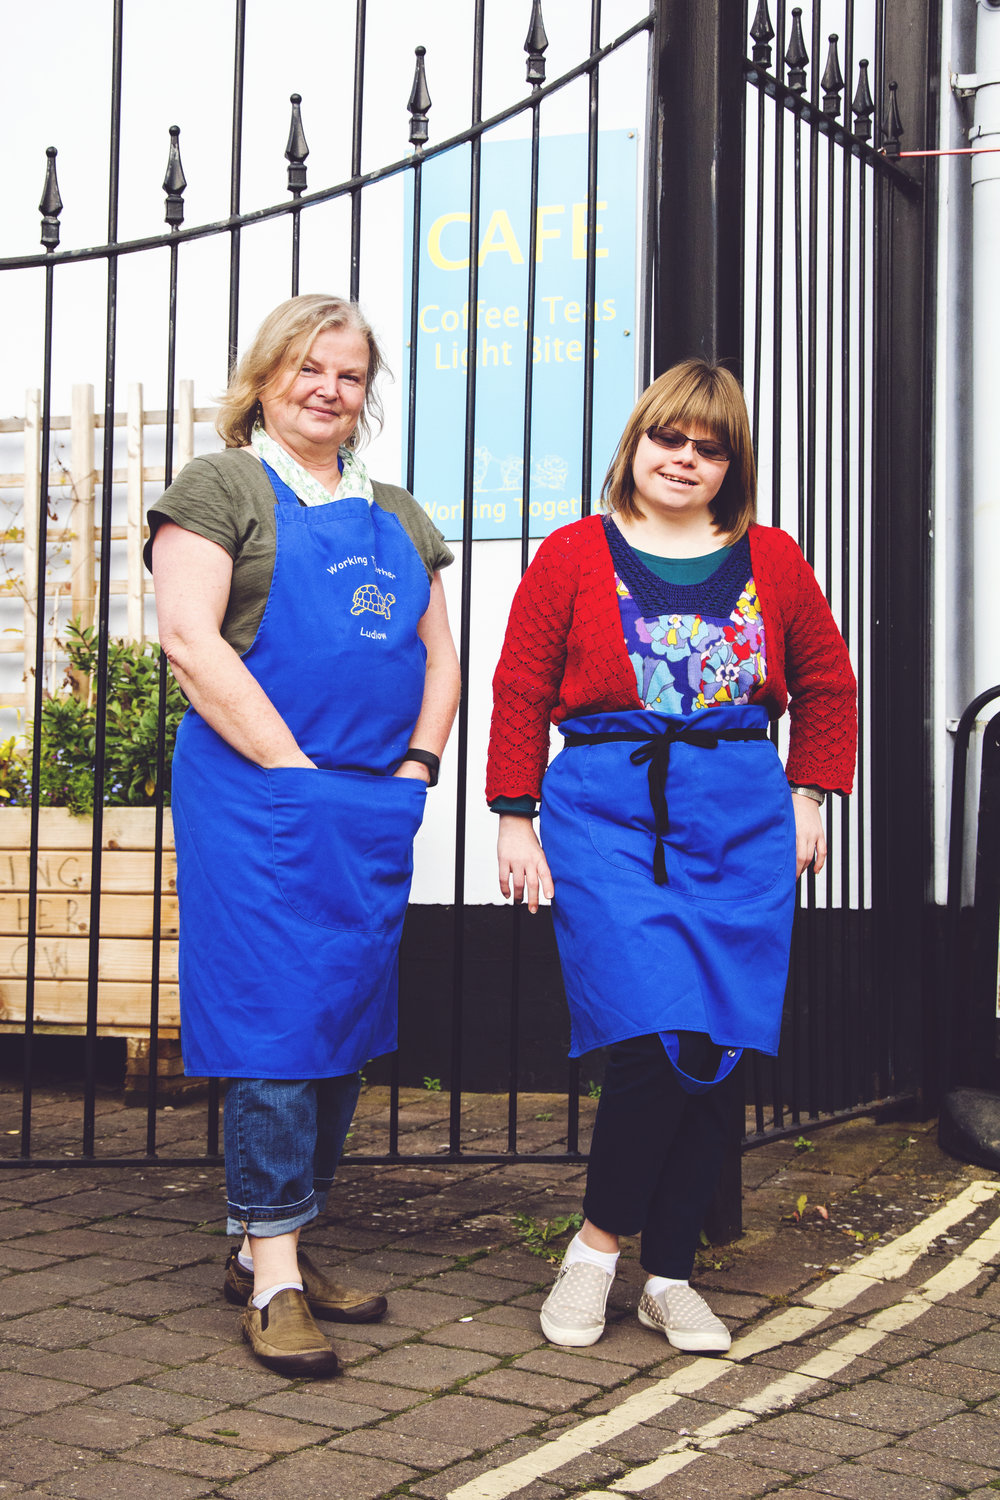 Nicola and Steph outside The Working Together Cafe, Ludlow copyright Ashleigh Cadet